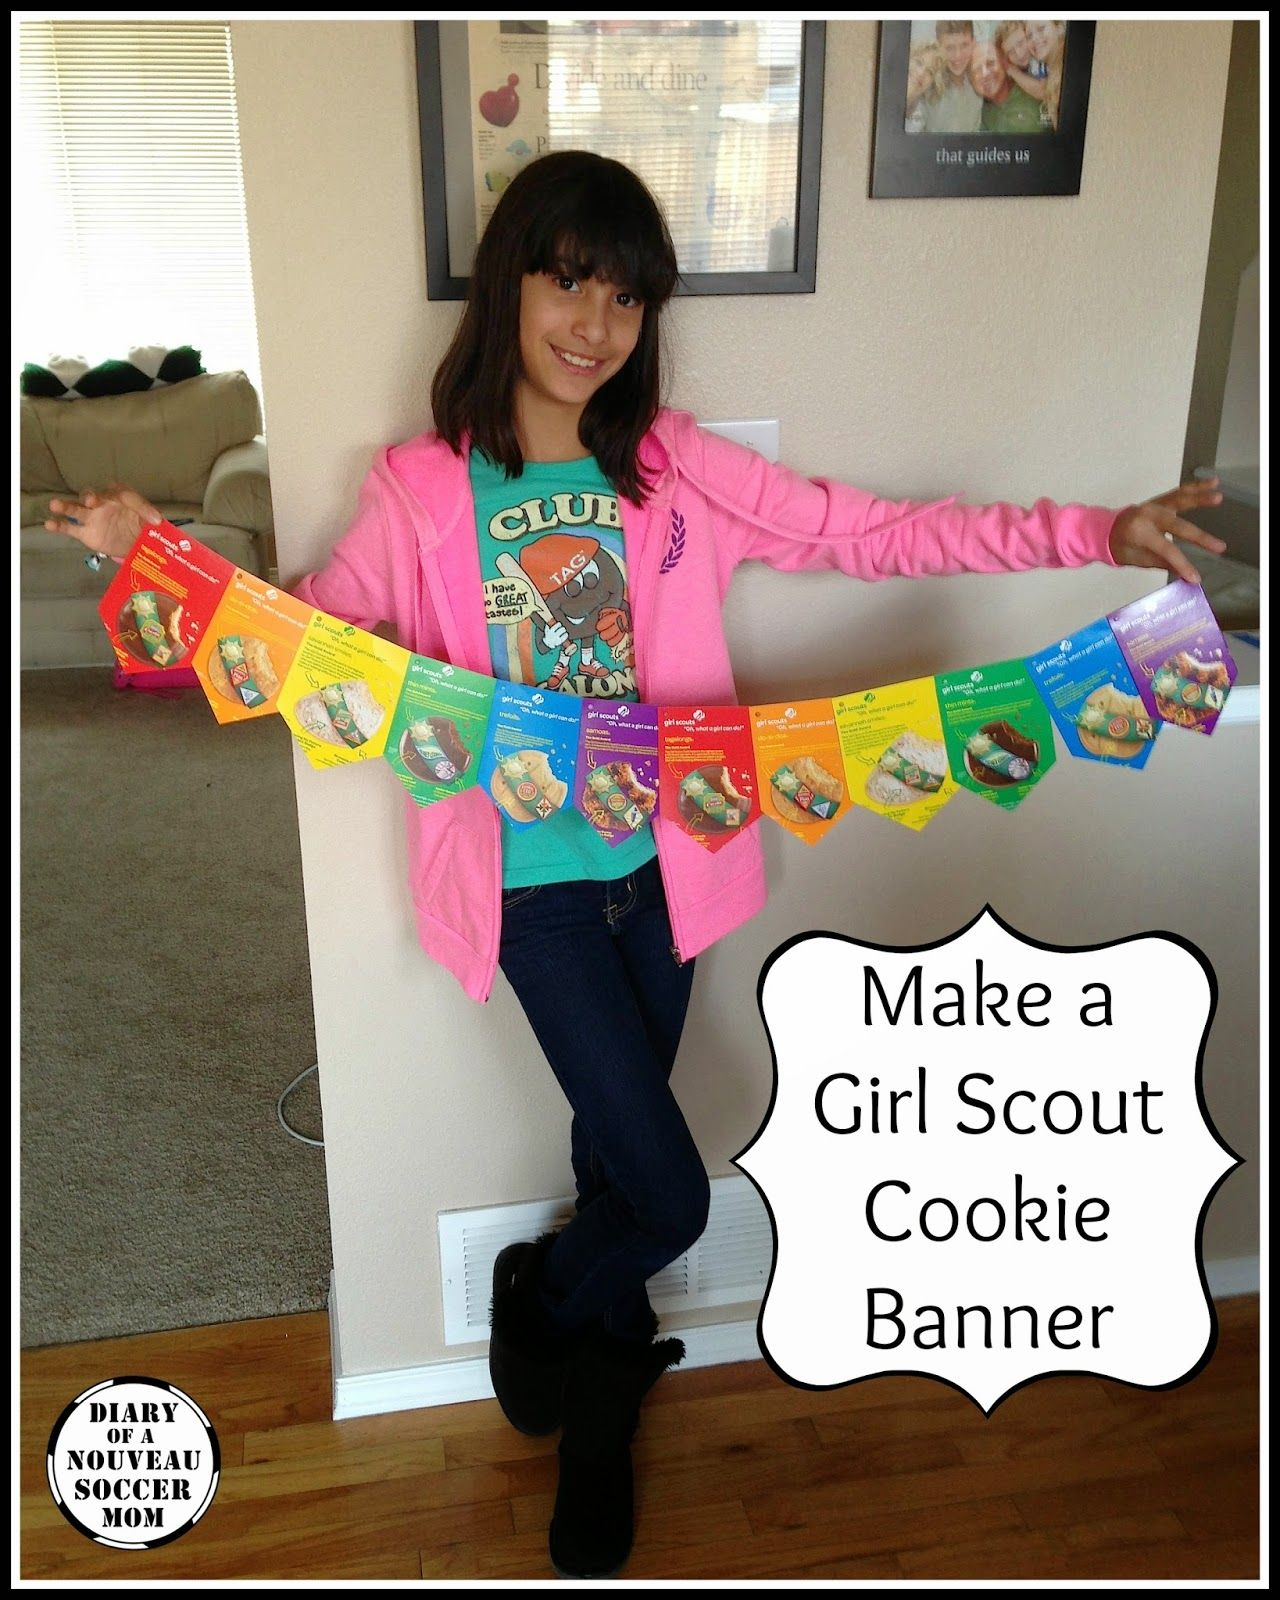 Girl scout scrapbook ideas - Girl Scout Crafts Galore Http Www Makingfriends Com Scouts Scouts_girls Htm Places To Visit Pinterest Girls Girl Scouts And Girl Scout Crafts